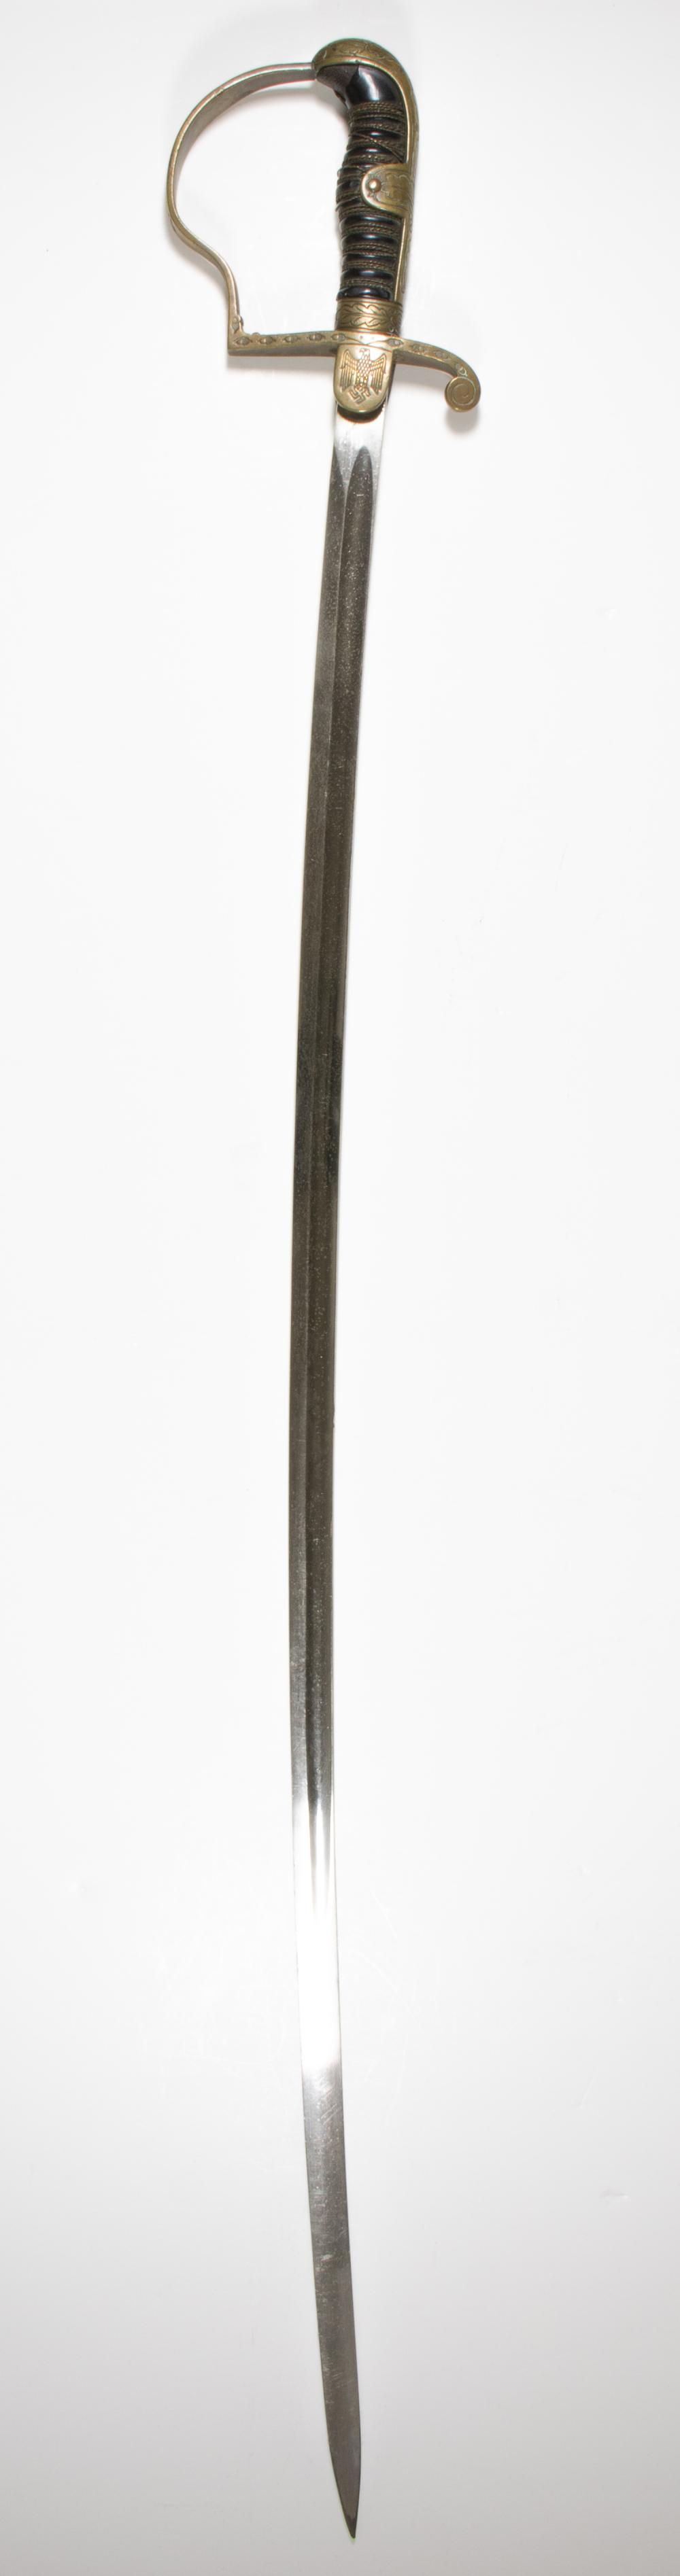 WORLD WAR II GERMAN OFFICER'S SWORD